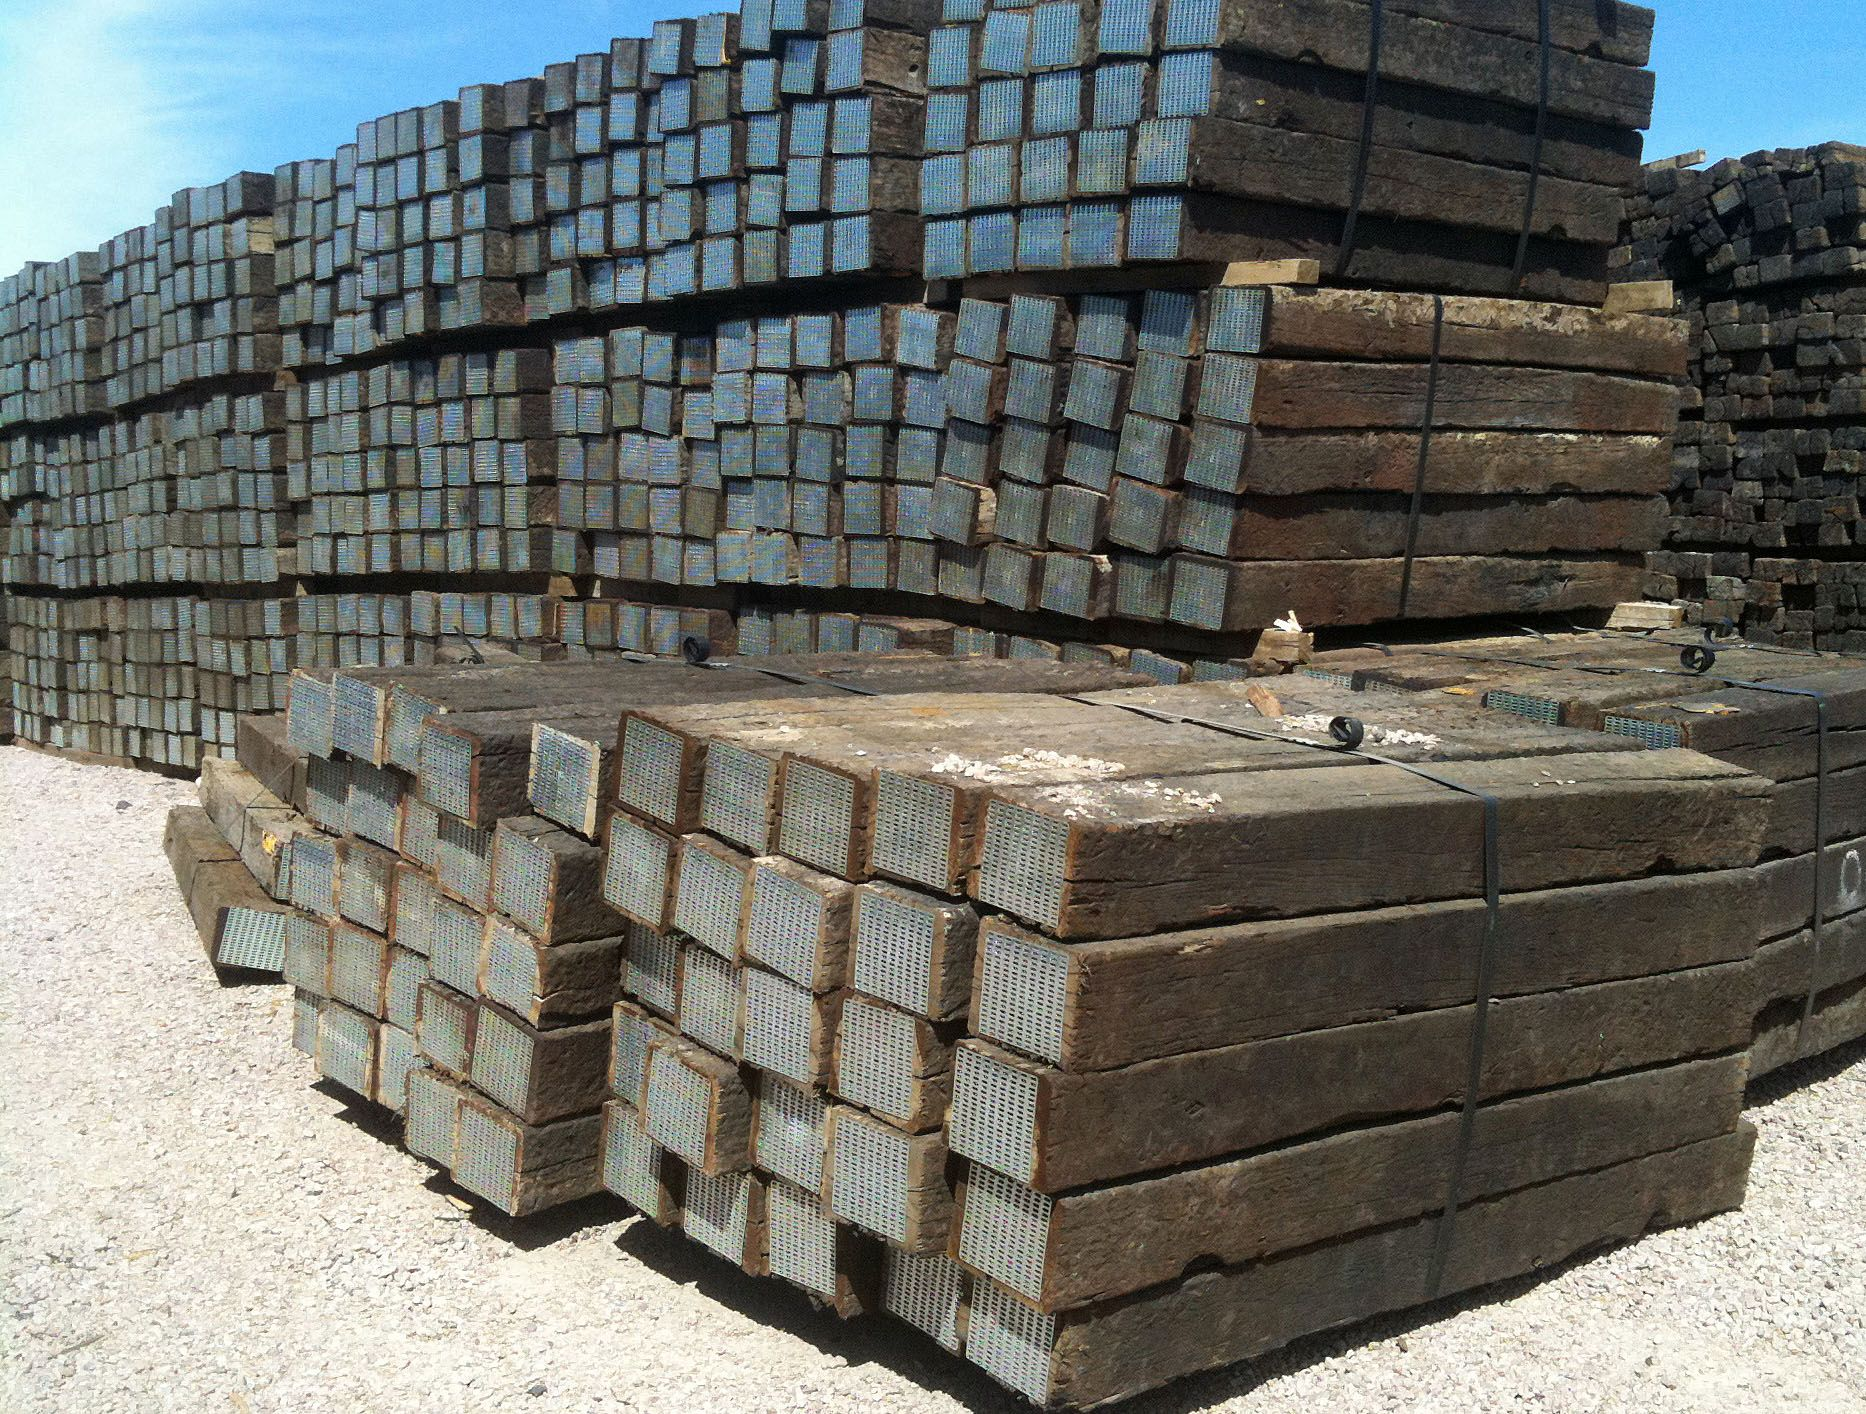 Pick Up 2 Hobos Contrast Railroad Ties With Cadillac